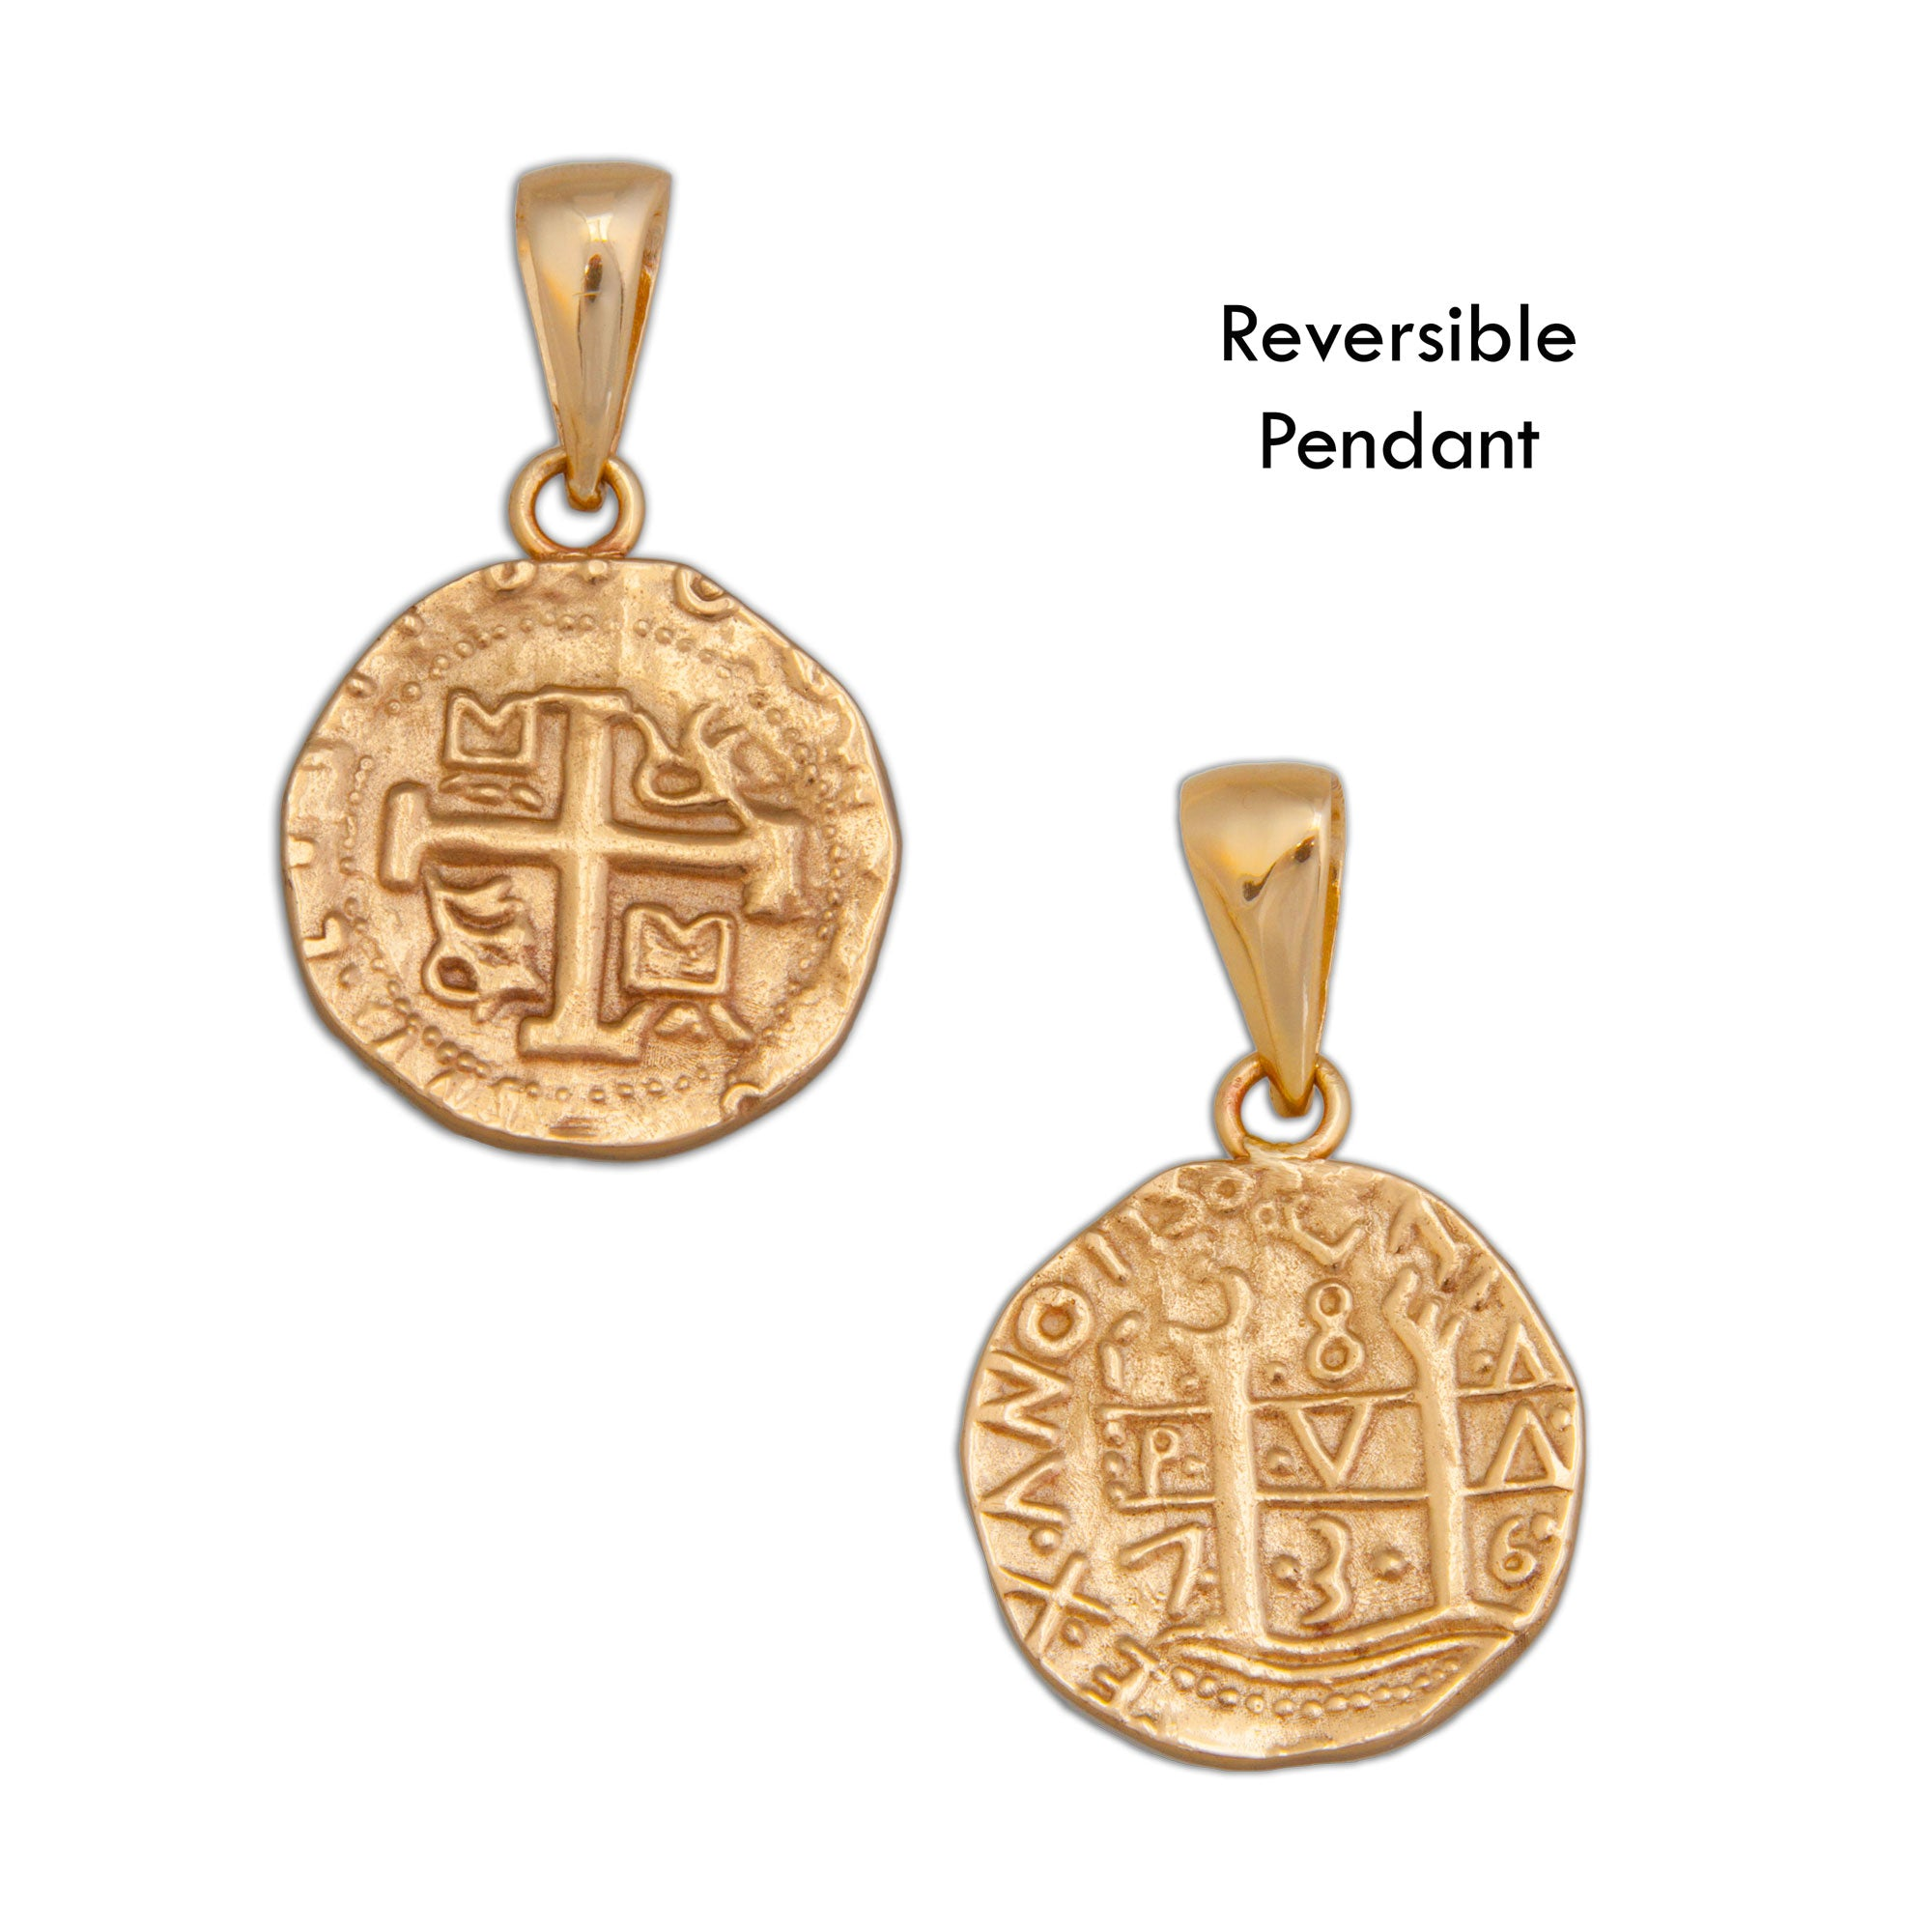 Alchemia Replica Treasure Coin Pendant | Charles Albert Jewelry